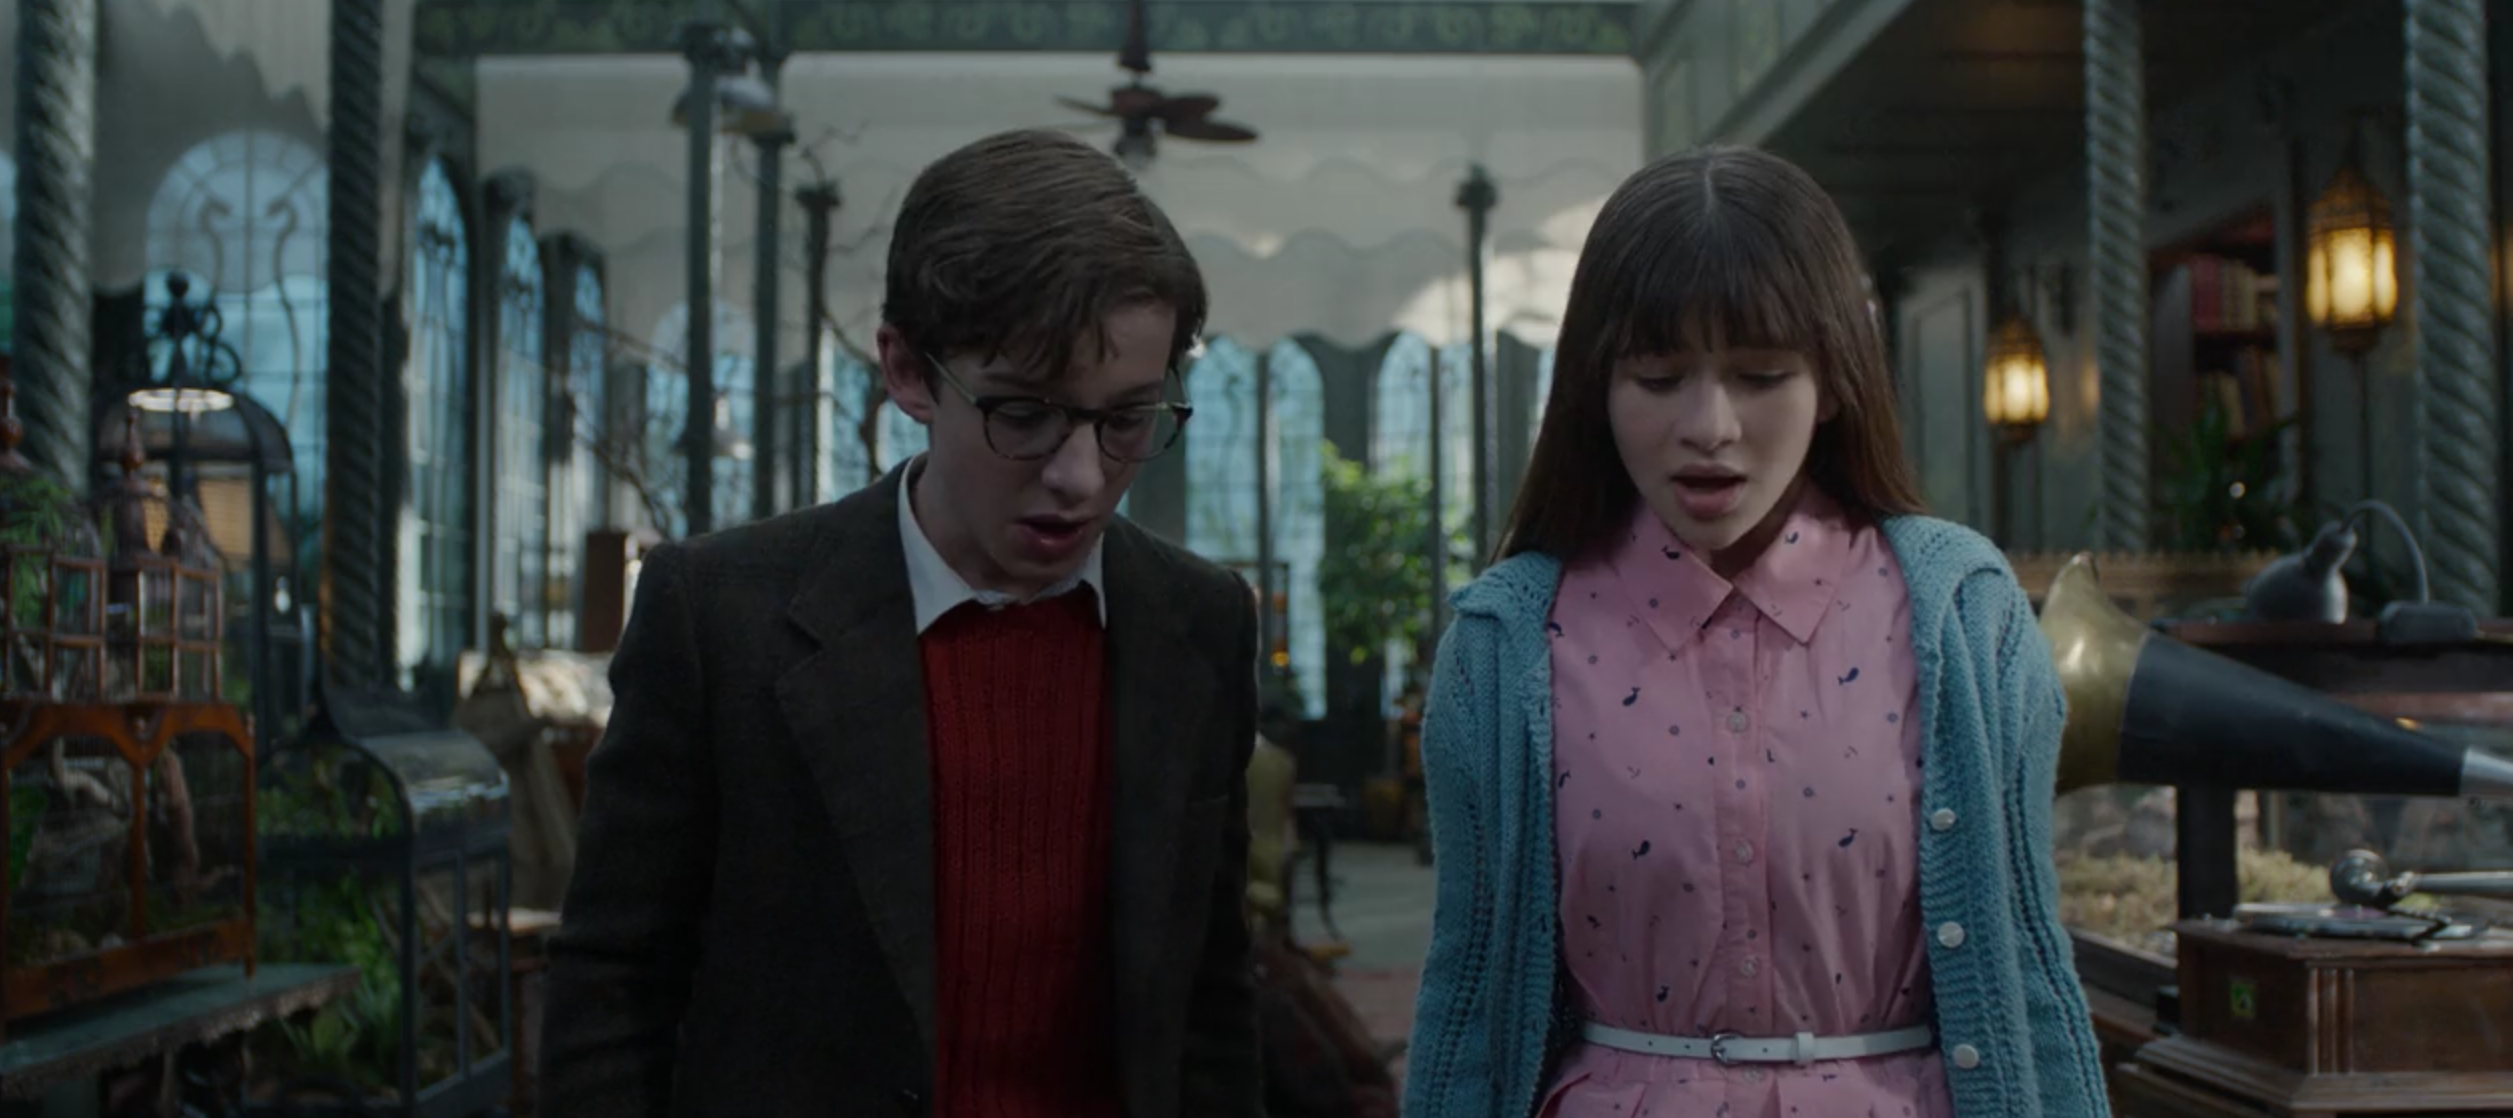 Klaus (Louis Hynes) and Violet (Malina Weissman) Baudelaire in the Reptile Room.